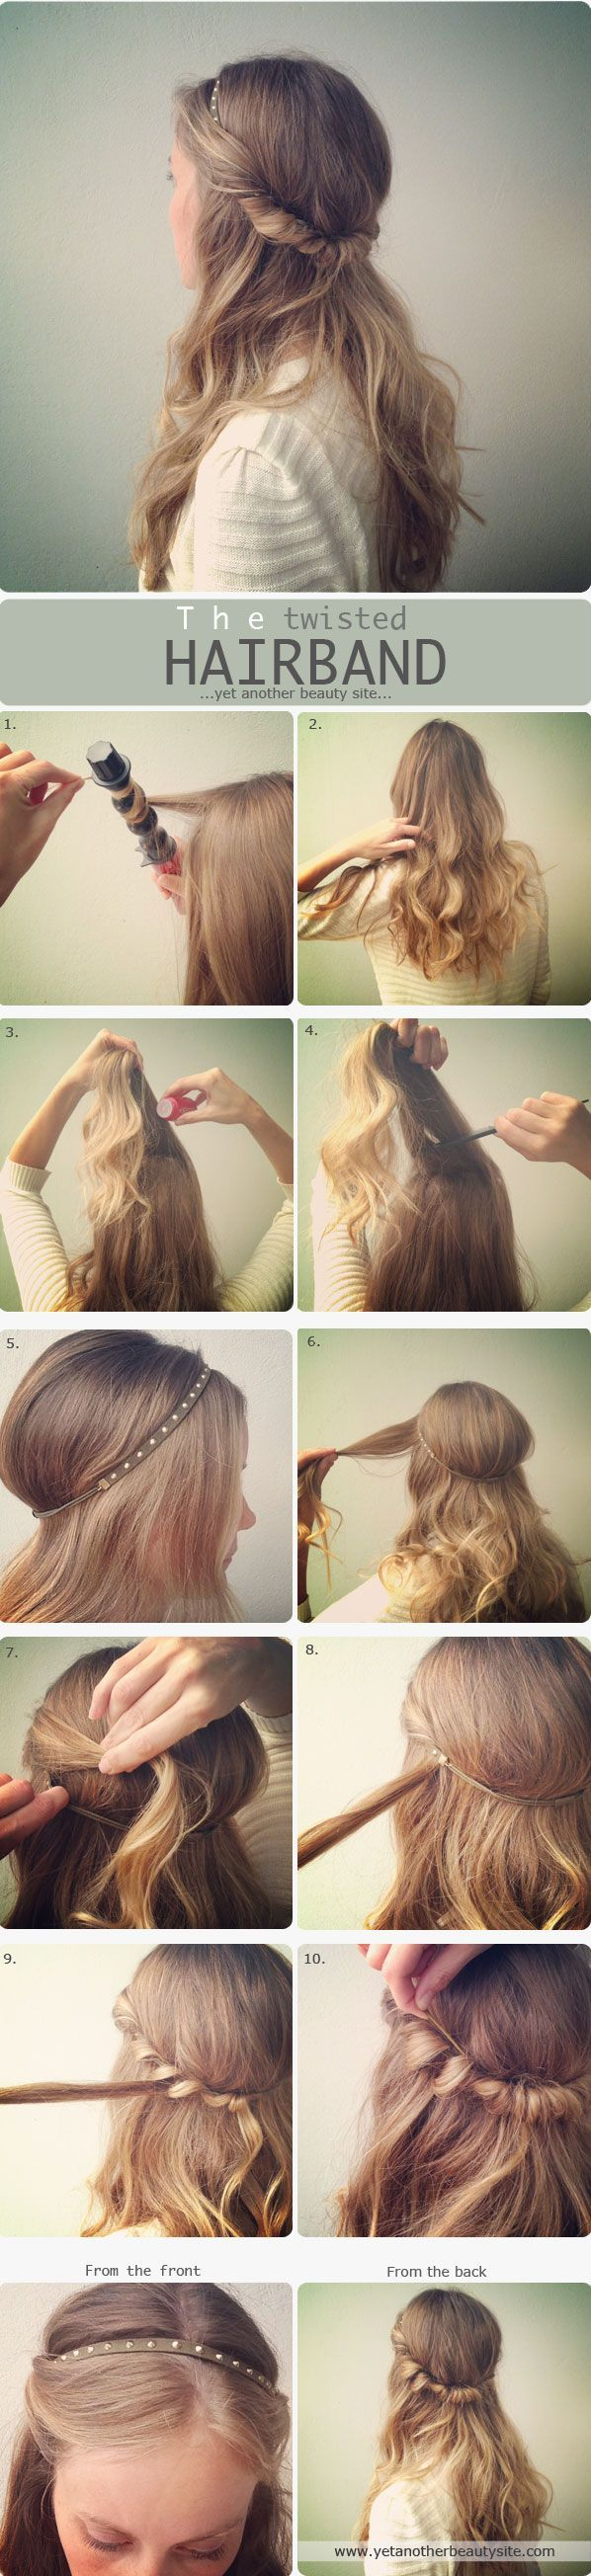 You don't want to wear your long hair in a simple way or you want to be a head-turner? You will not miss these 15 stylish half up half down tutorials. We all know that half up half down hairstyles can bring a more female look, so they are adored by lots of girls. Today,[Read the Rest]